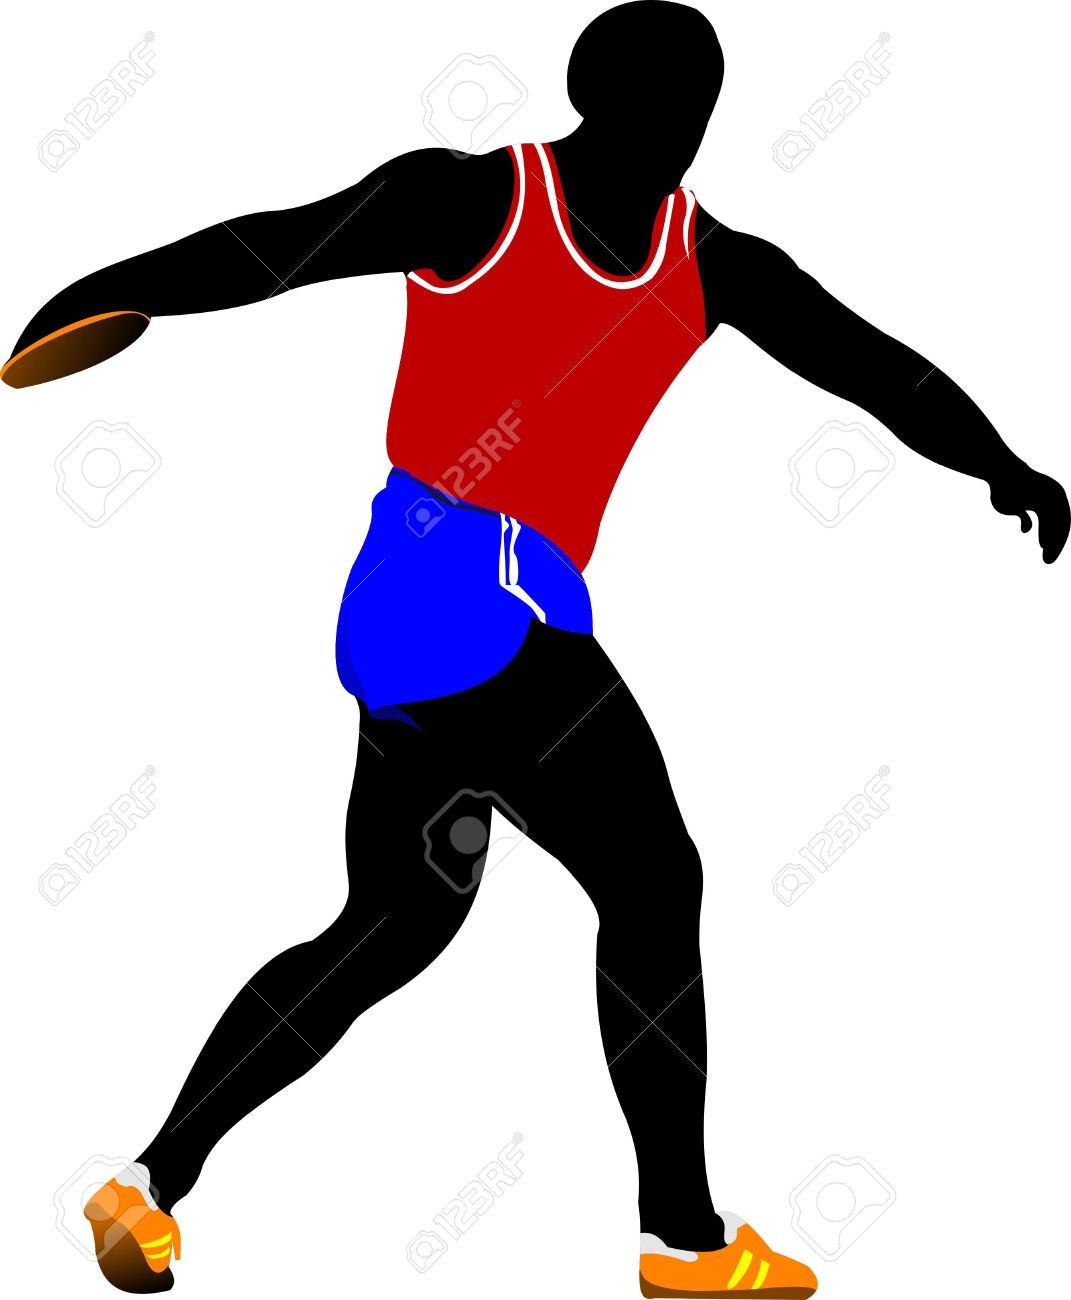 Athlete about to throw the discus Stock Vector - 9551538